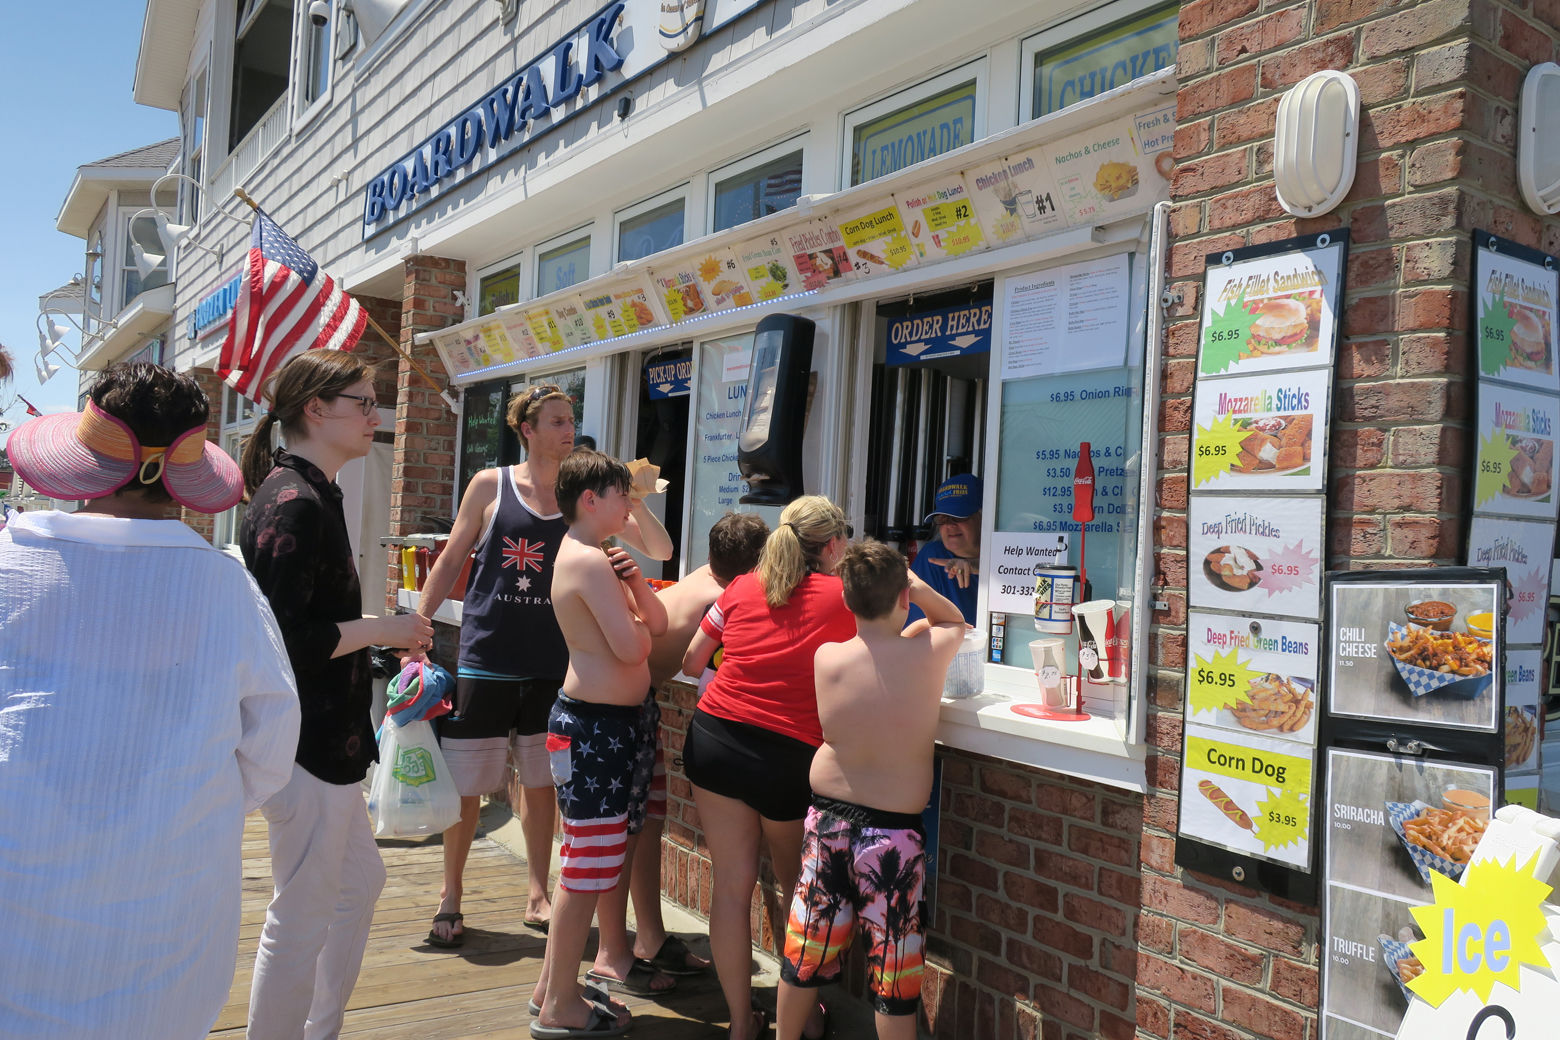 People wait in line at Boardwalk Fries on Bethany Beach's 1-mile boardwalk.